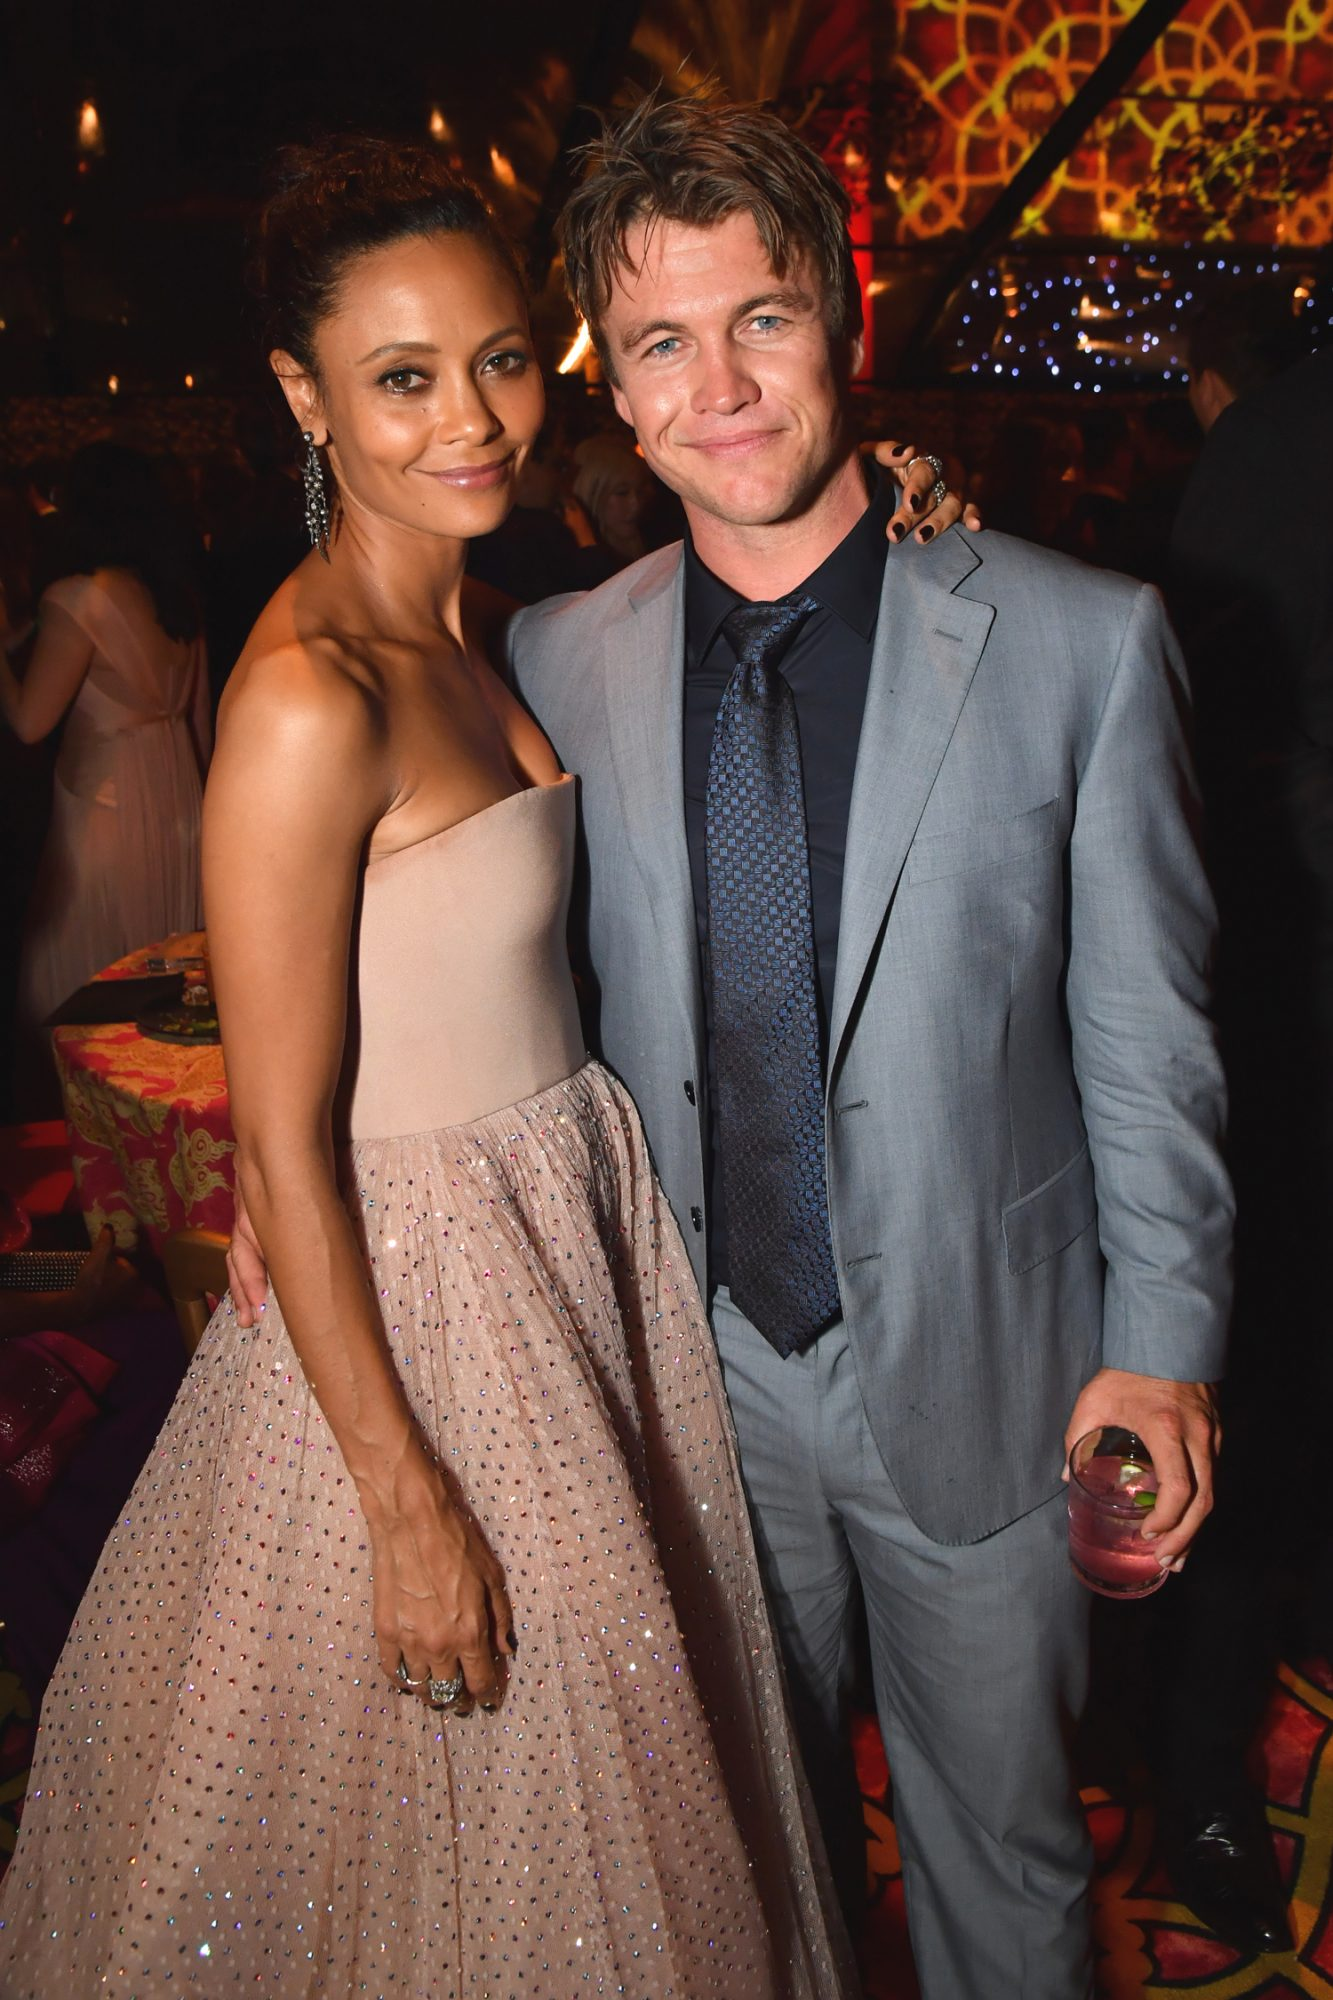 Thandie Newton and Luke Hemsworth